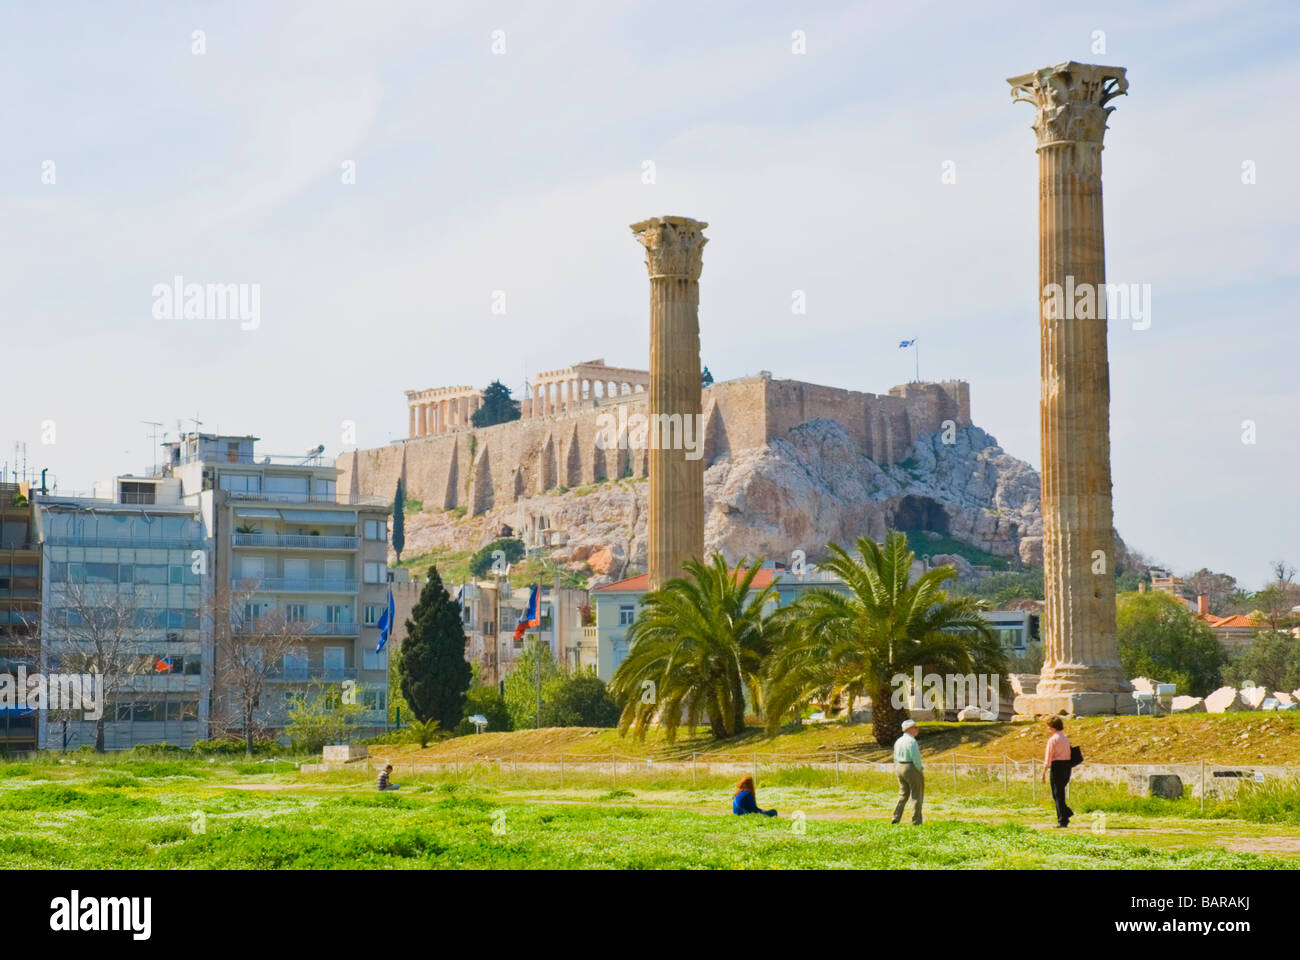 Ruins of Temple of Olympian Zeus site with Acropolis in background in central Athens Greece Europe - Stock Image